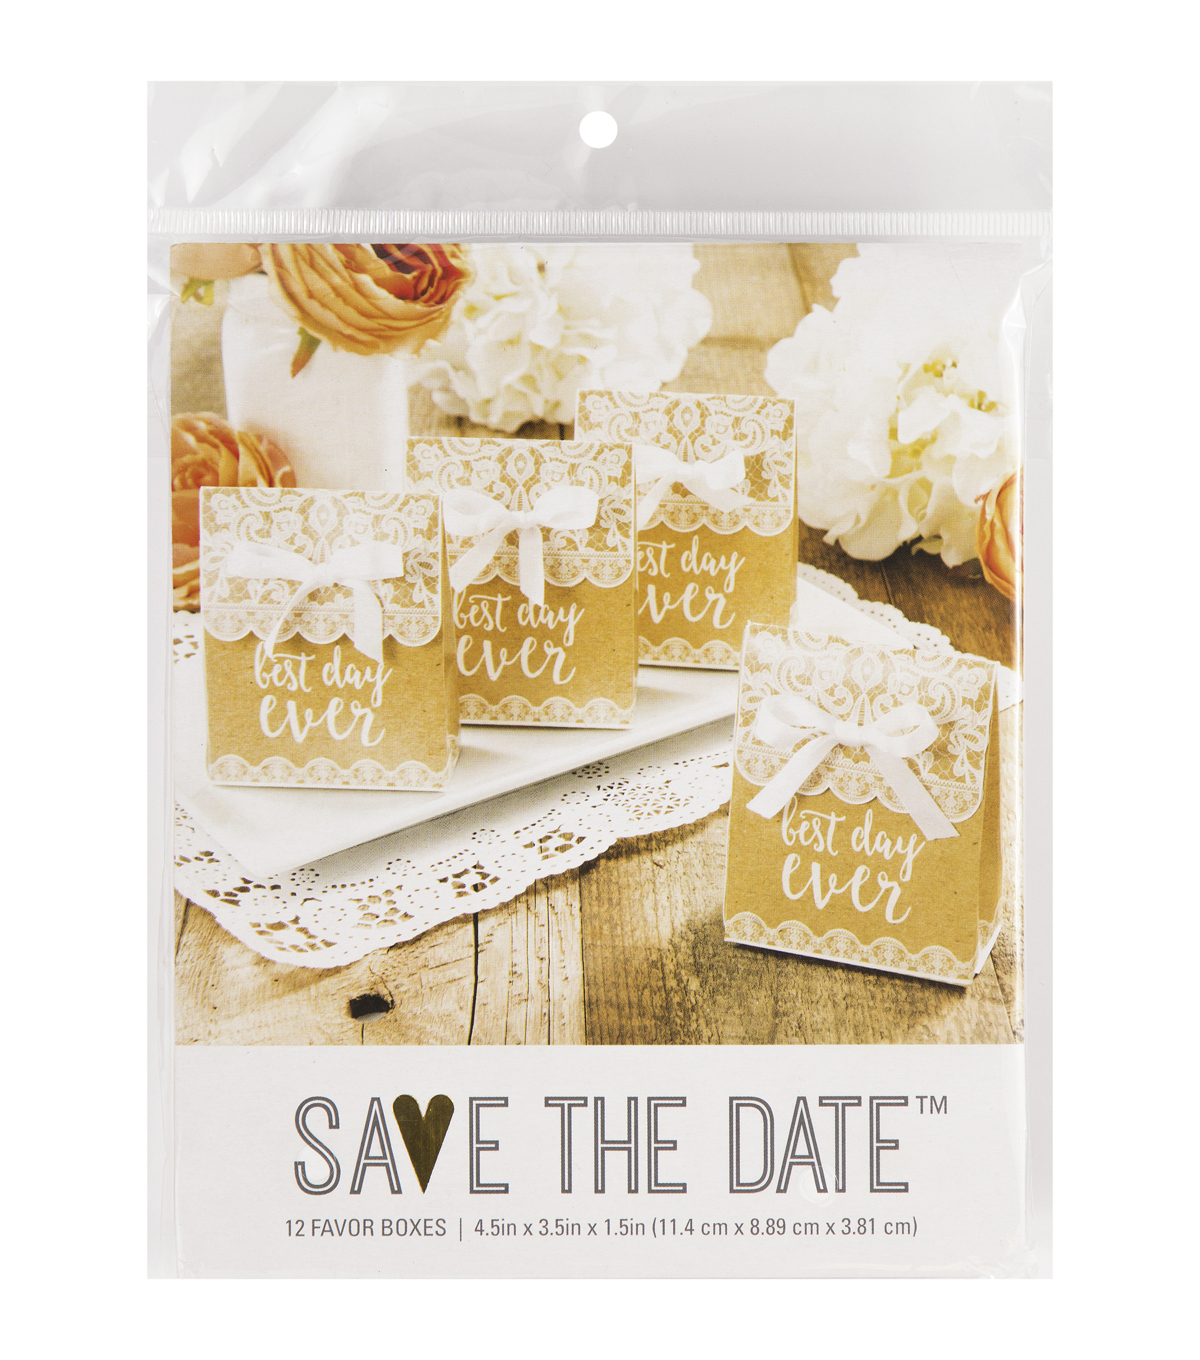 Save The Date Pack of 12 Lace Favor Box-Best Day Ever